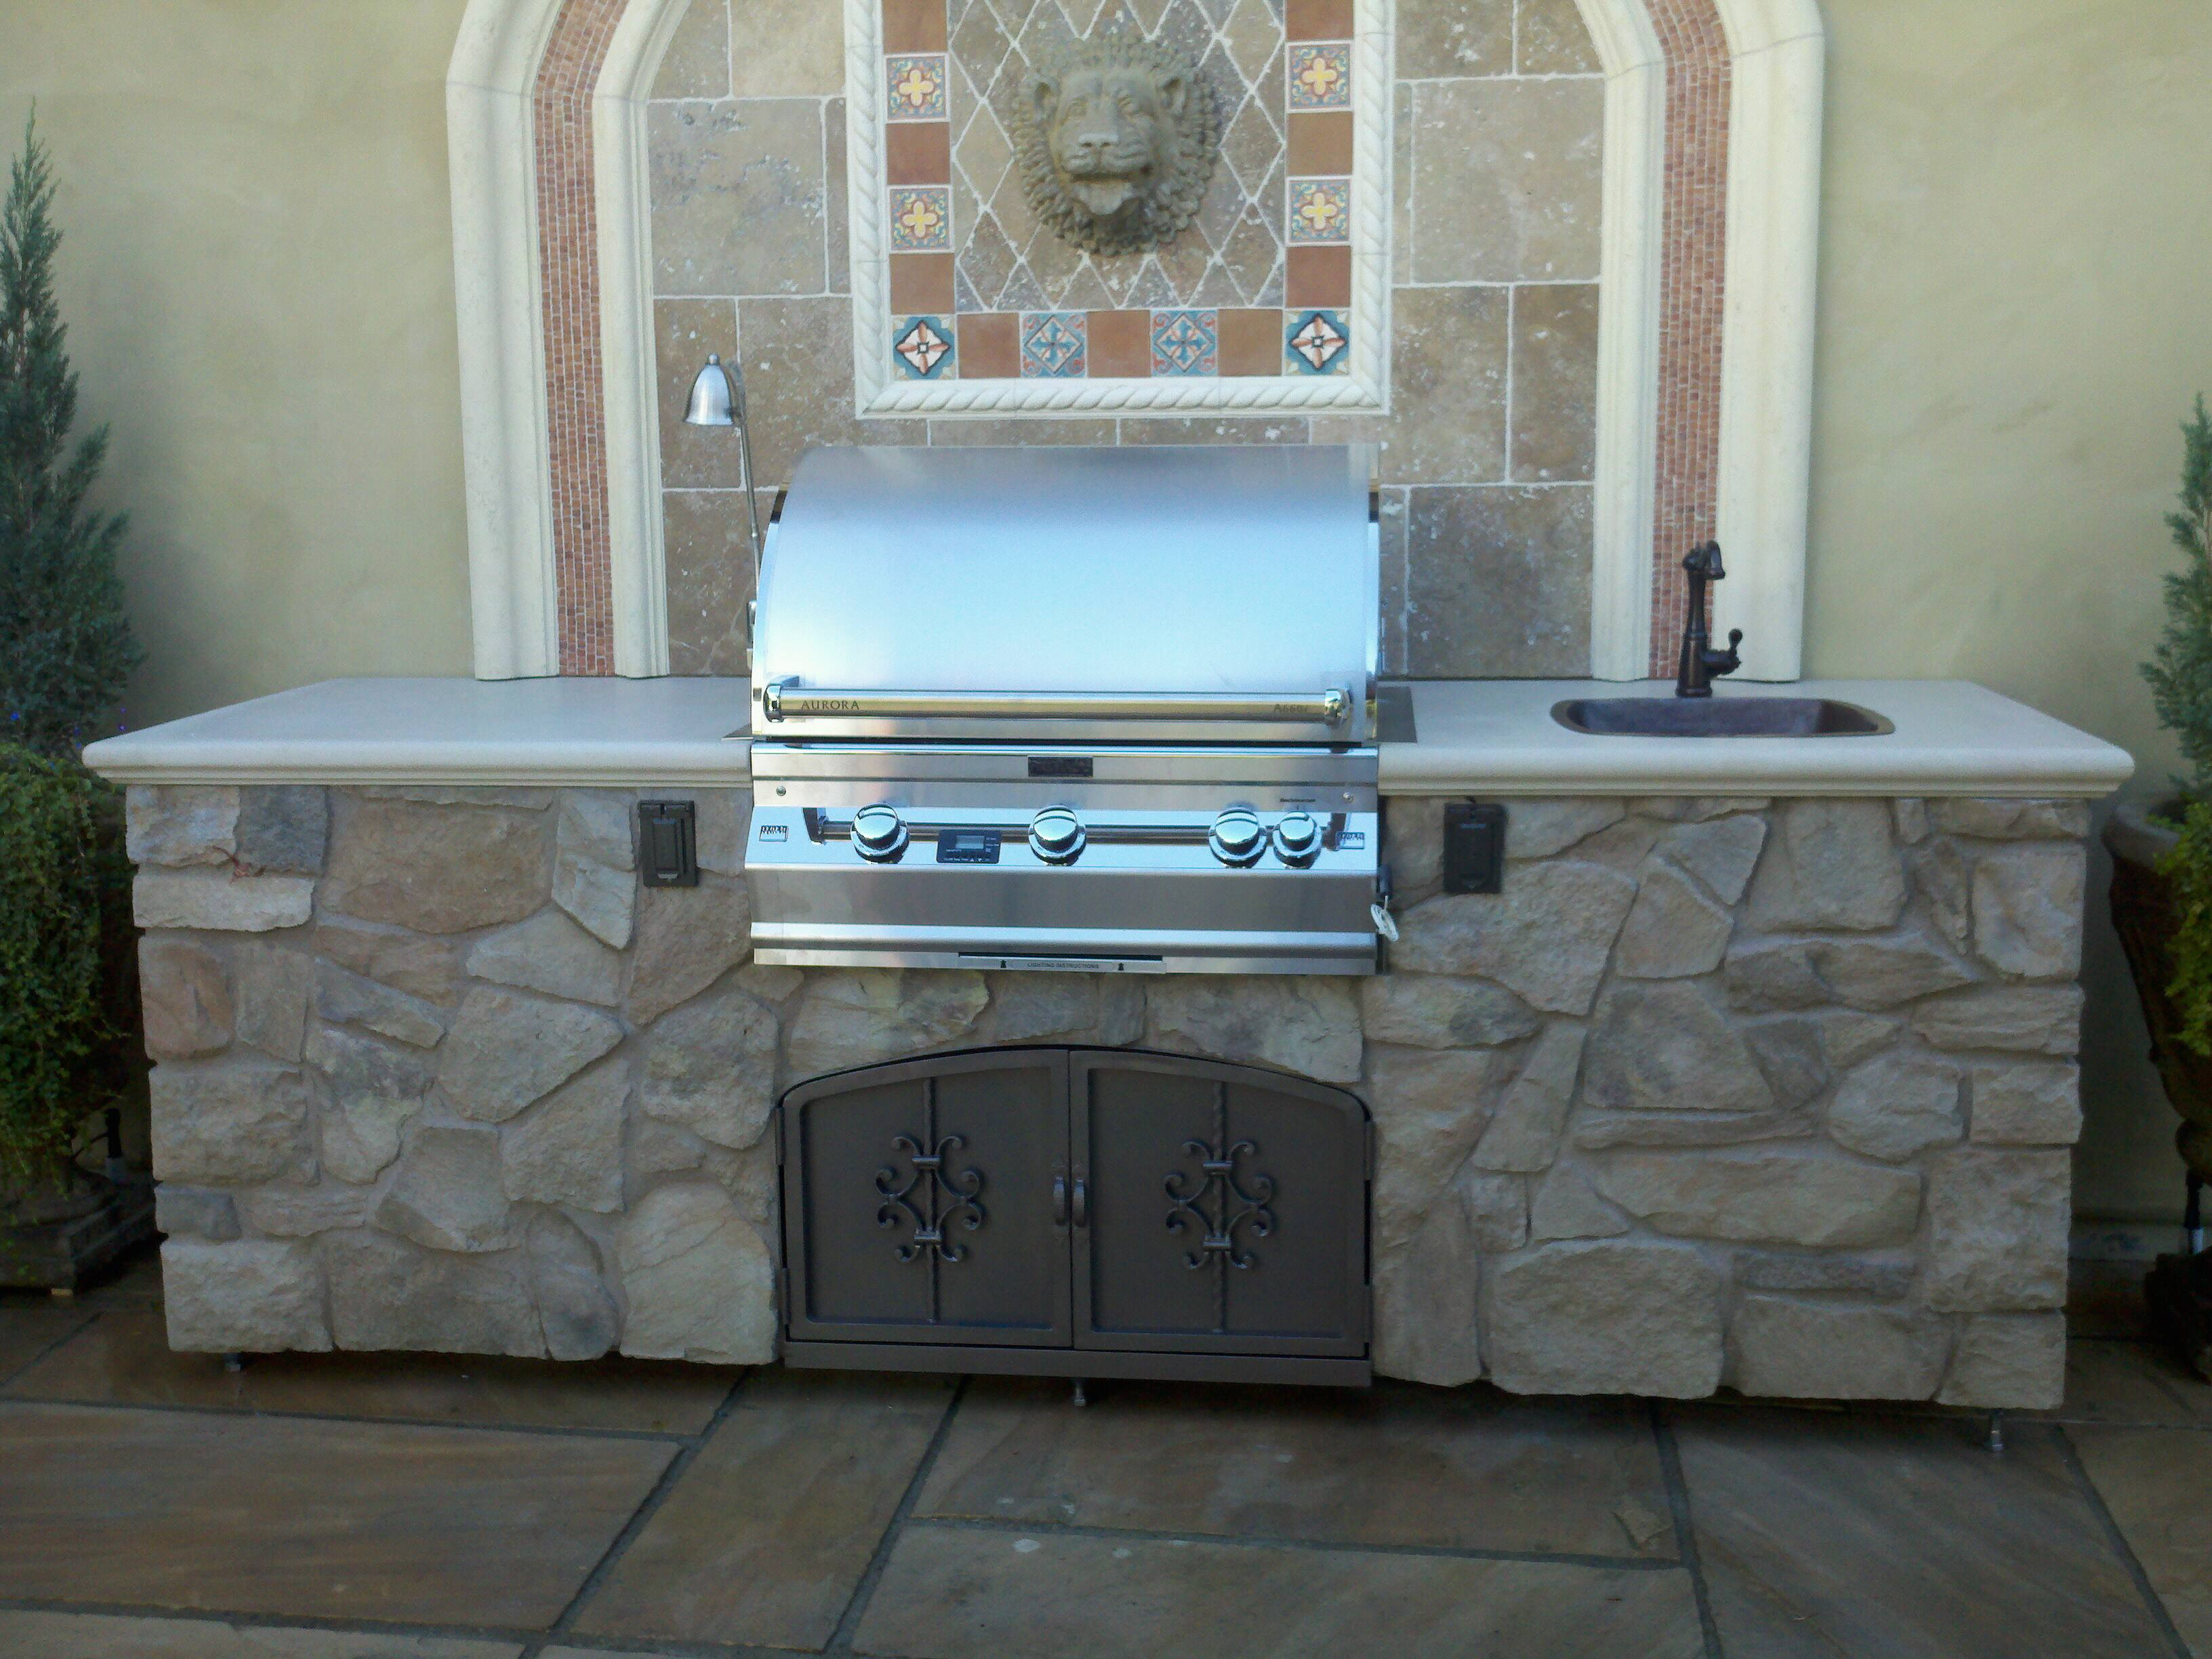 ... 660i Aurora Grill w/ a copper sink and faucet. – Leasure Concepts